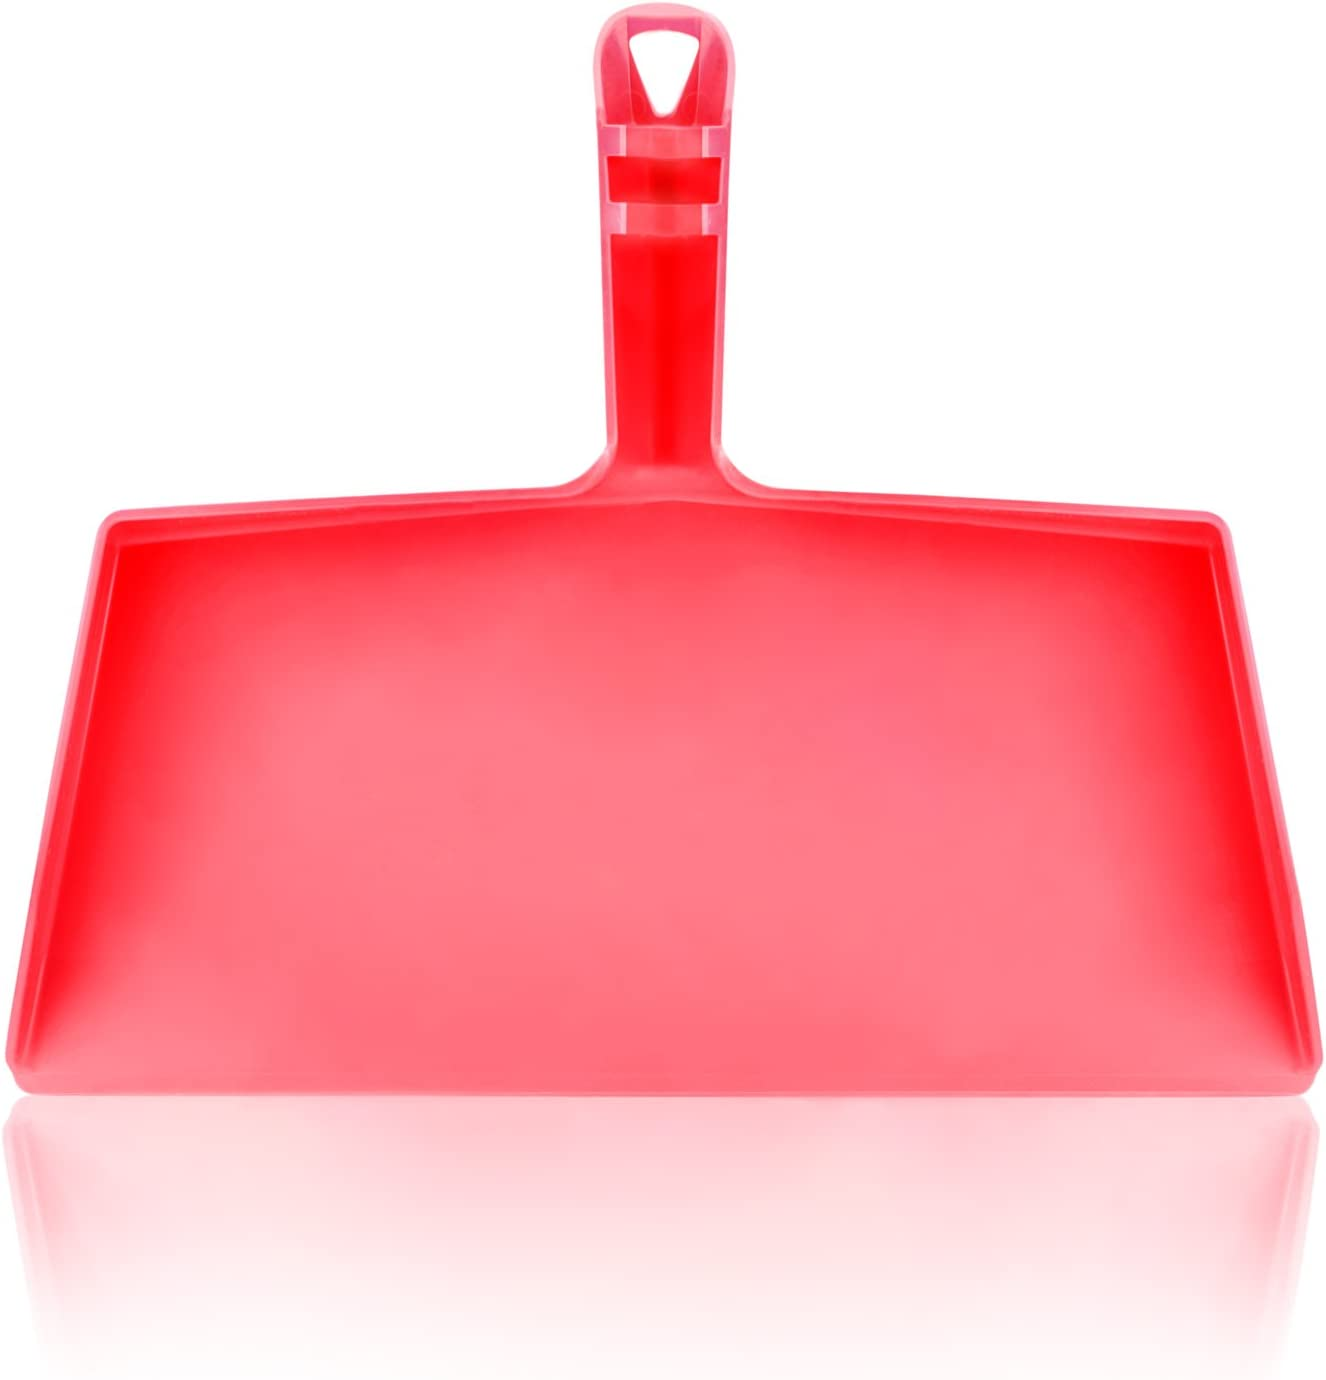 "Fuller Brush Fiesta Red Clip-On Dustpan - 10 ½"" Wide Opening – Durable Plastic Clip-On Handle Dust Pan with Easy Grip - Quick Clean Up for Home & Kitchen"